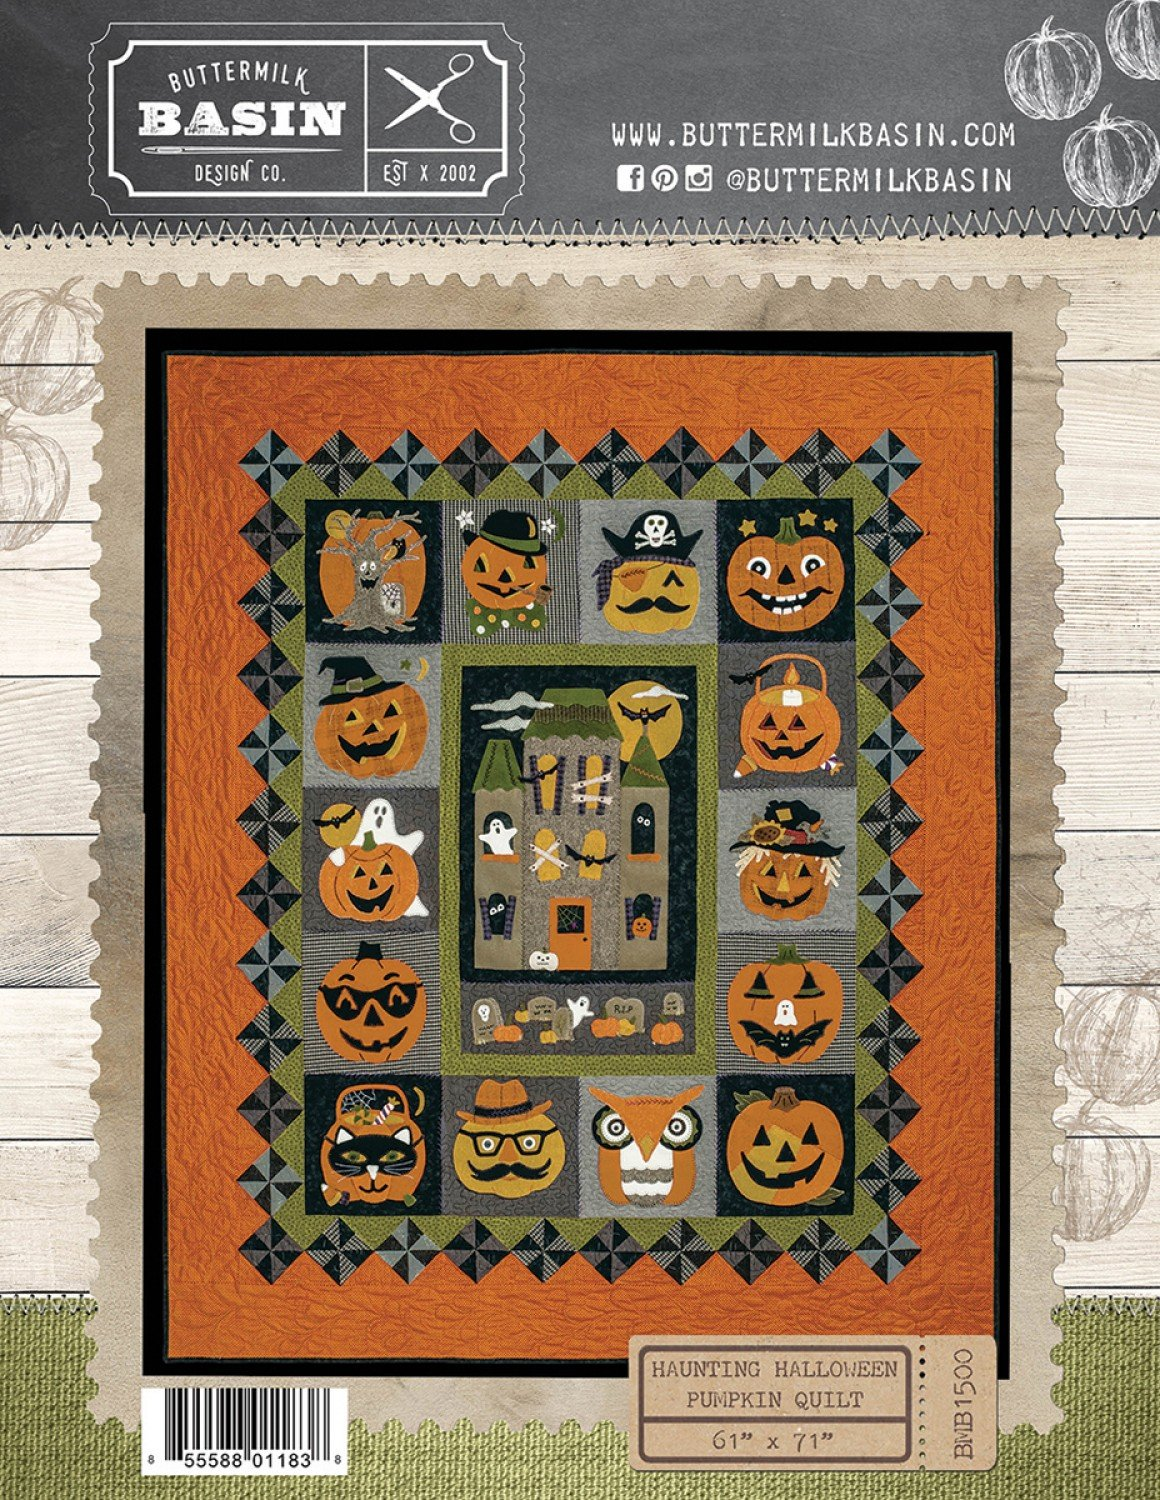 Haunting Halloween Pumpkin Quilt*Center Block & Finishing Pattern